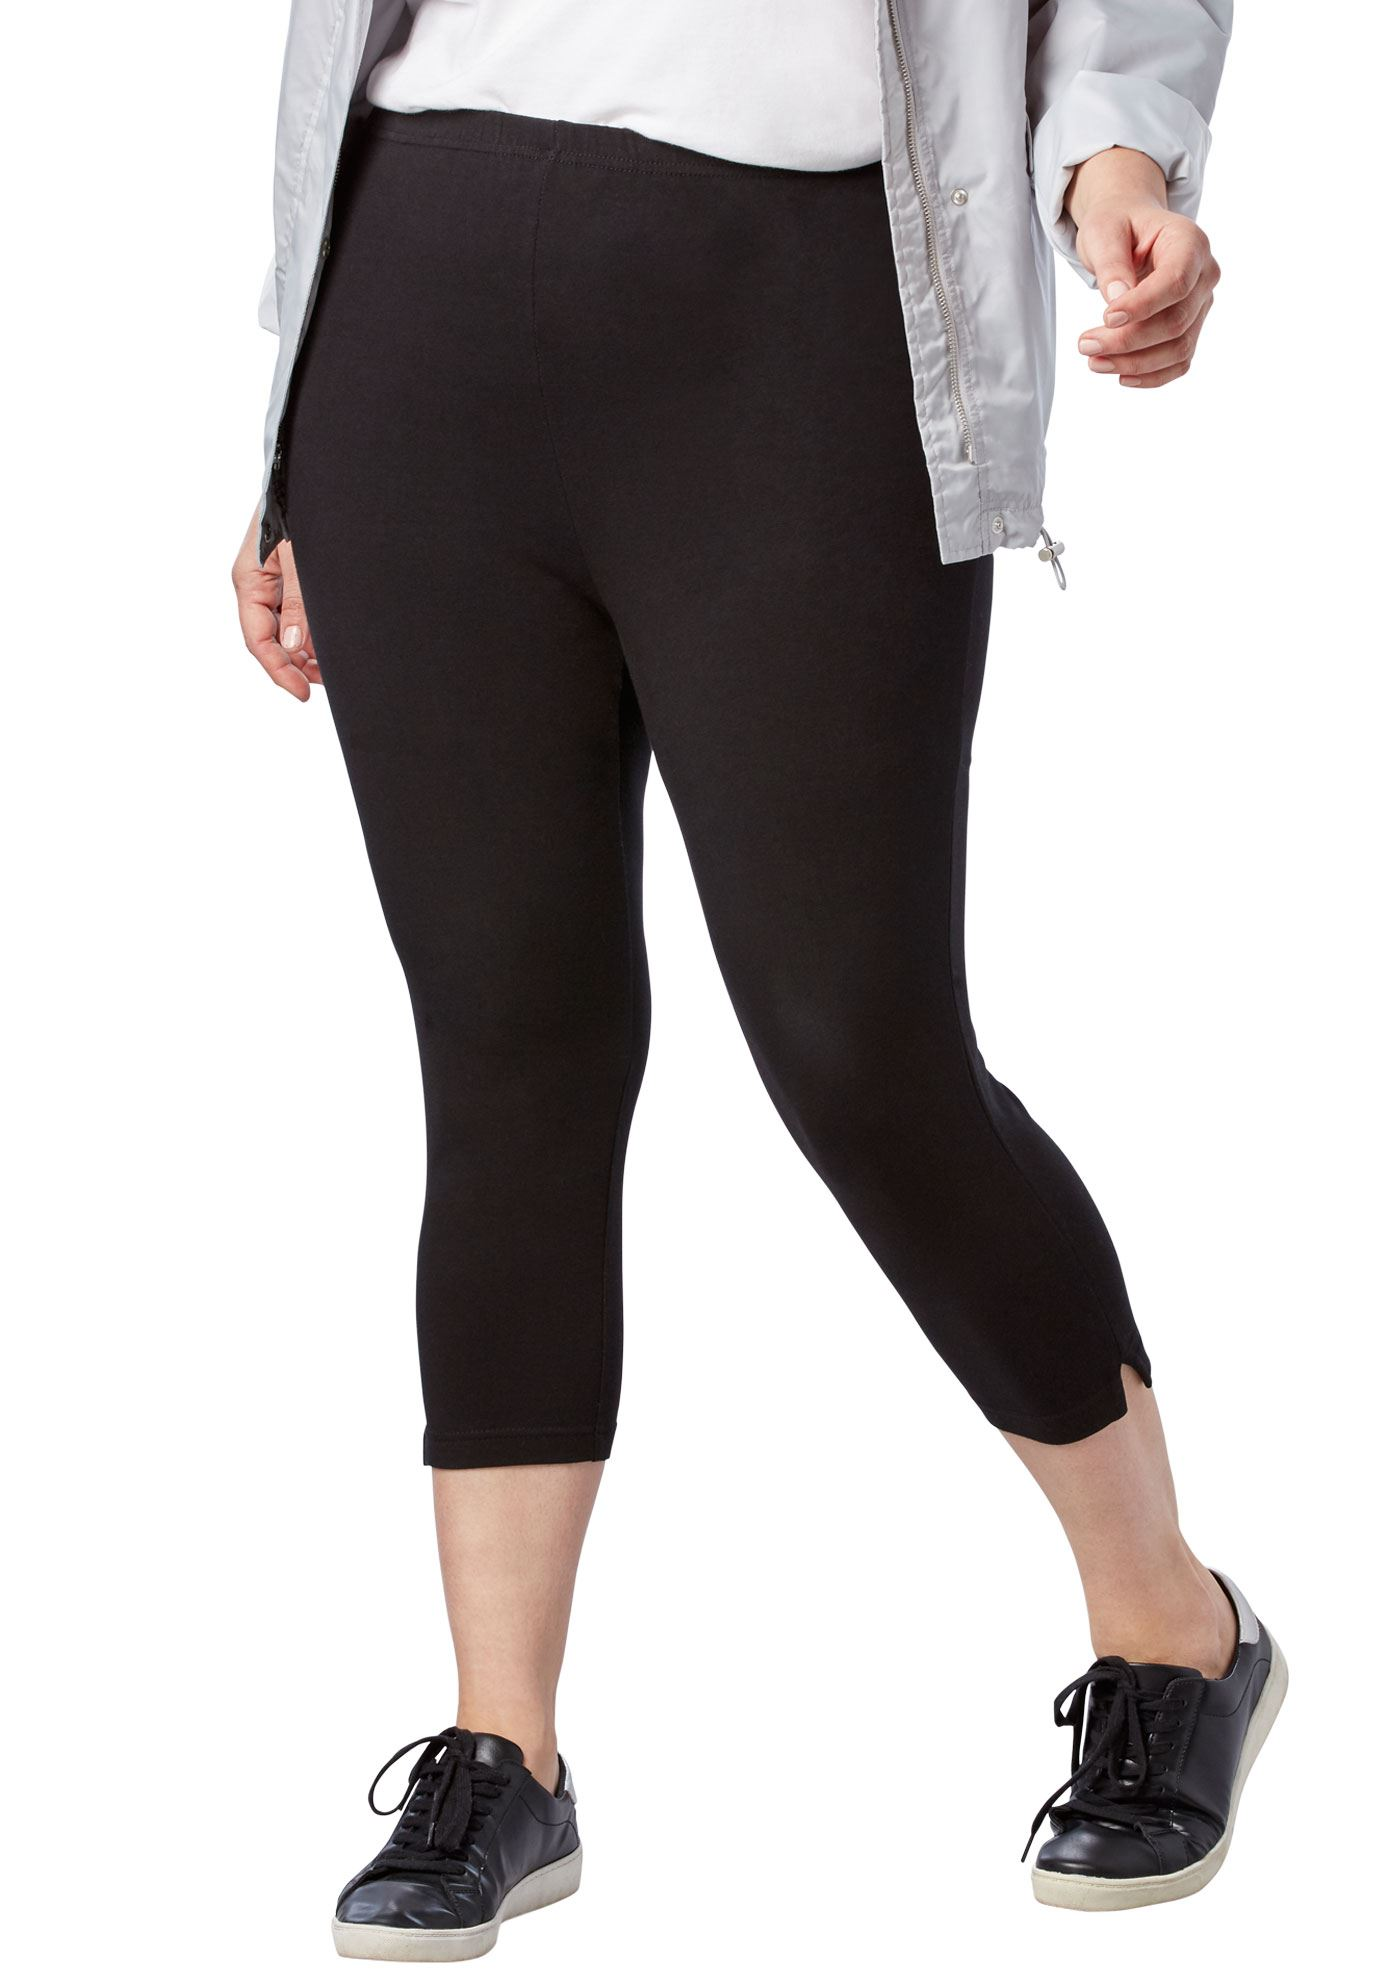 Plus Size Petite Stretch Cotton Capri Legging